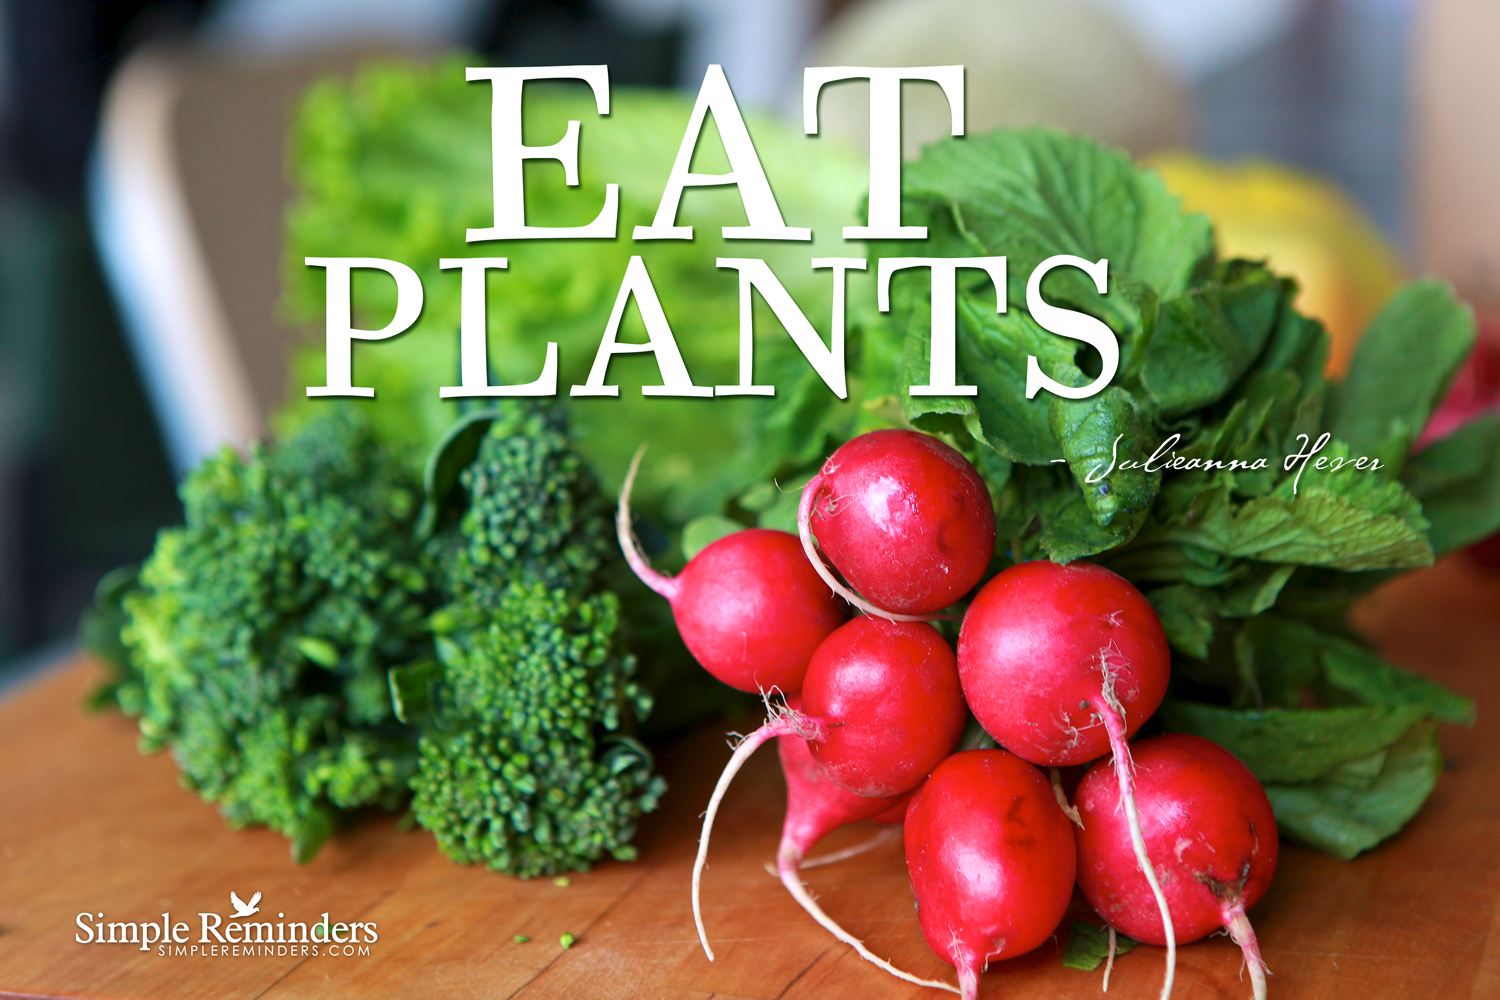 simplereminders-com-eat-plants-hever-withtext-displayres